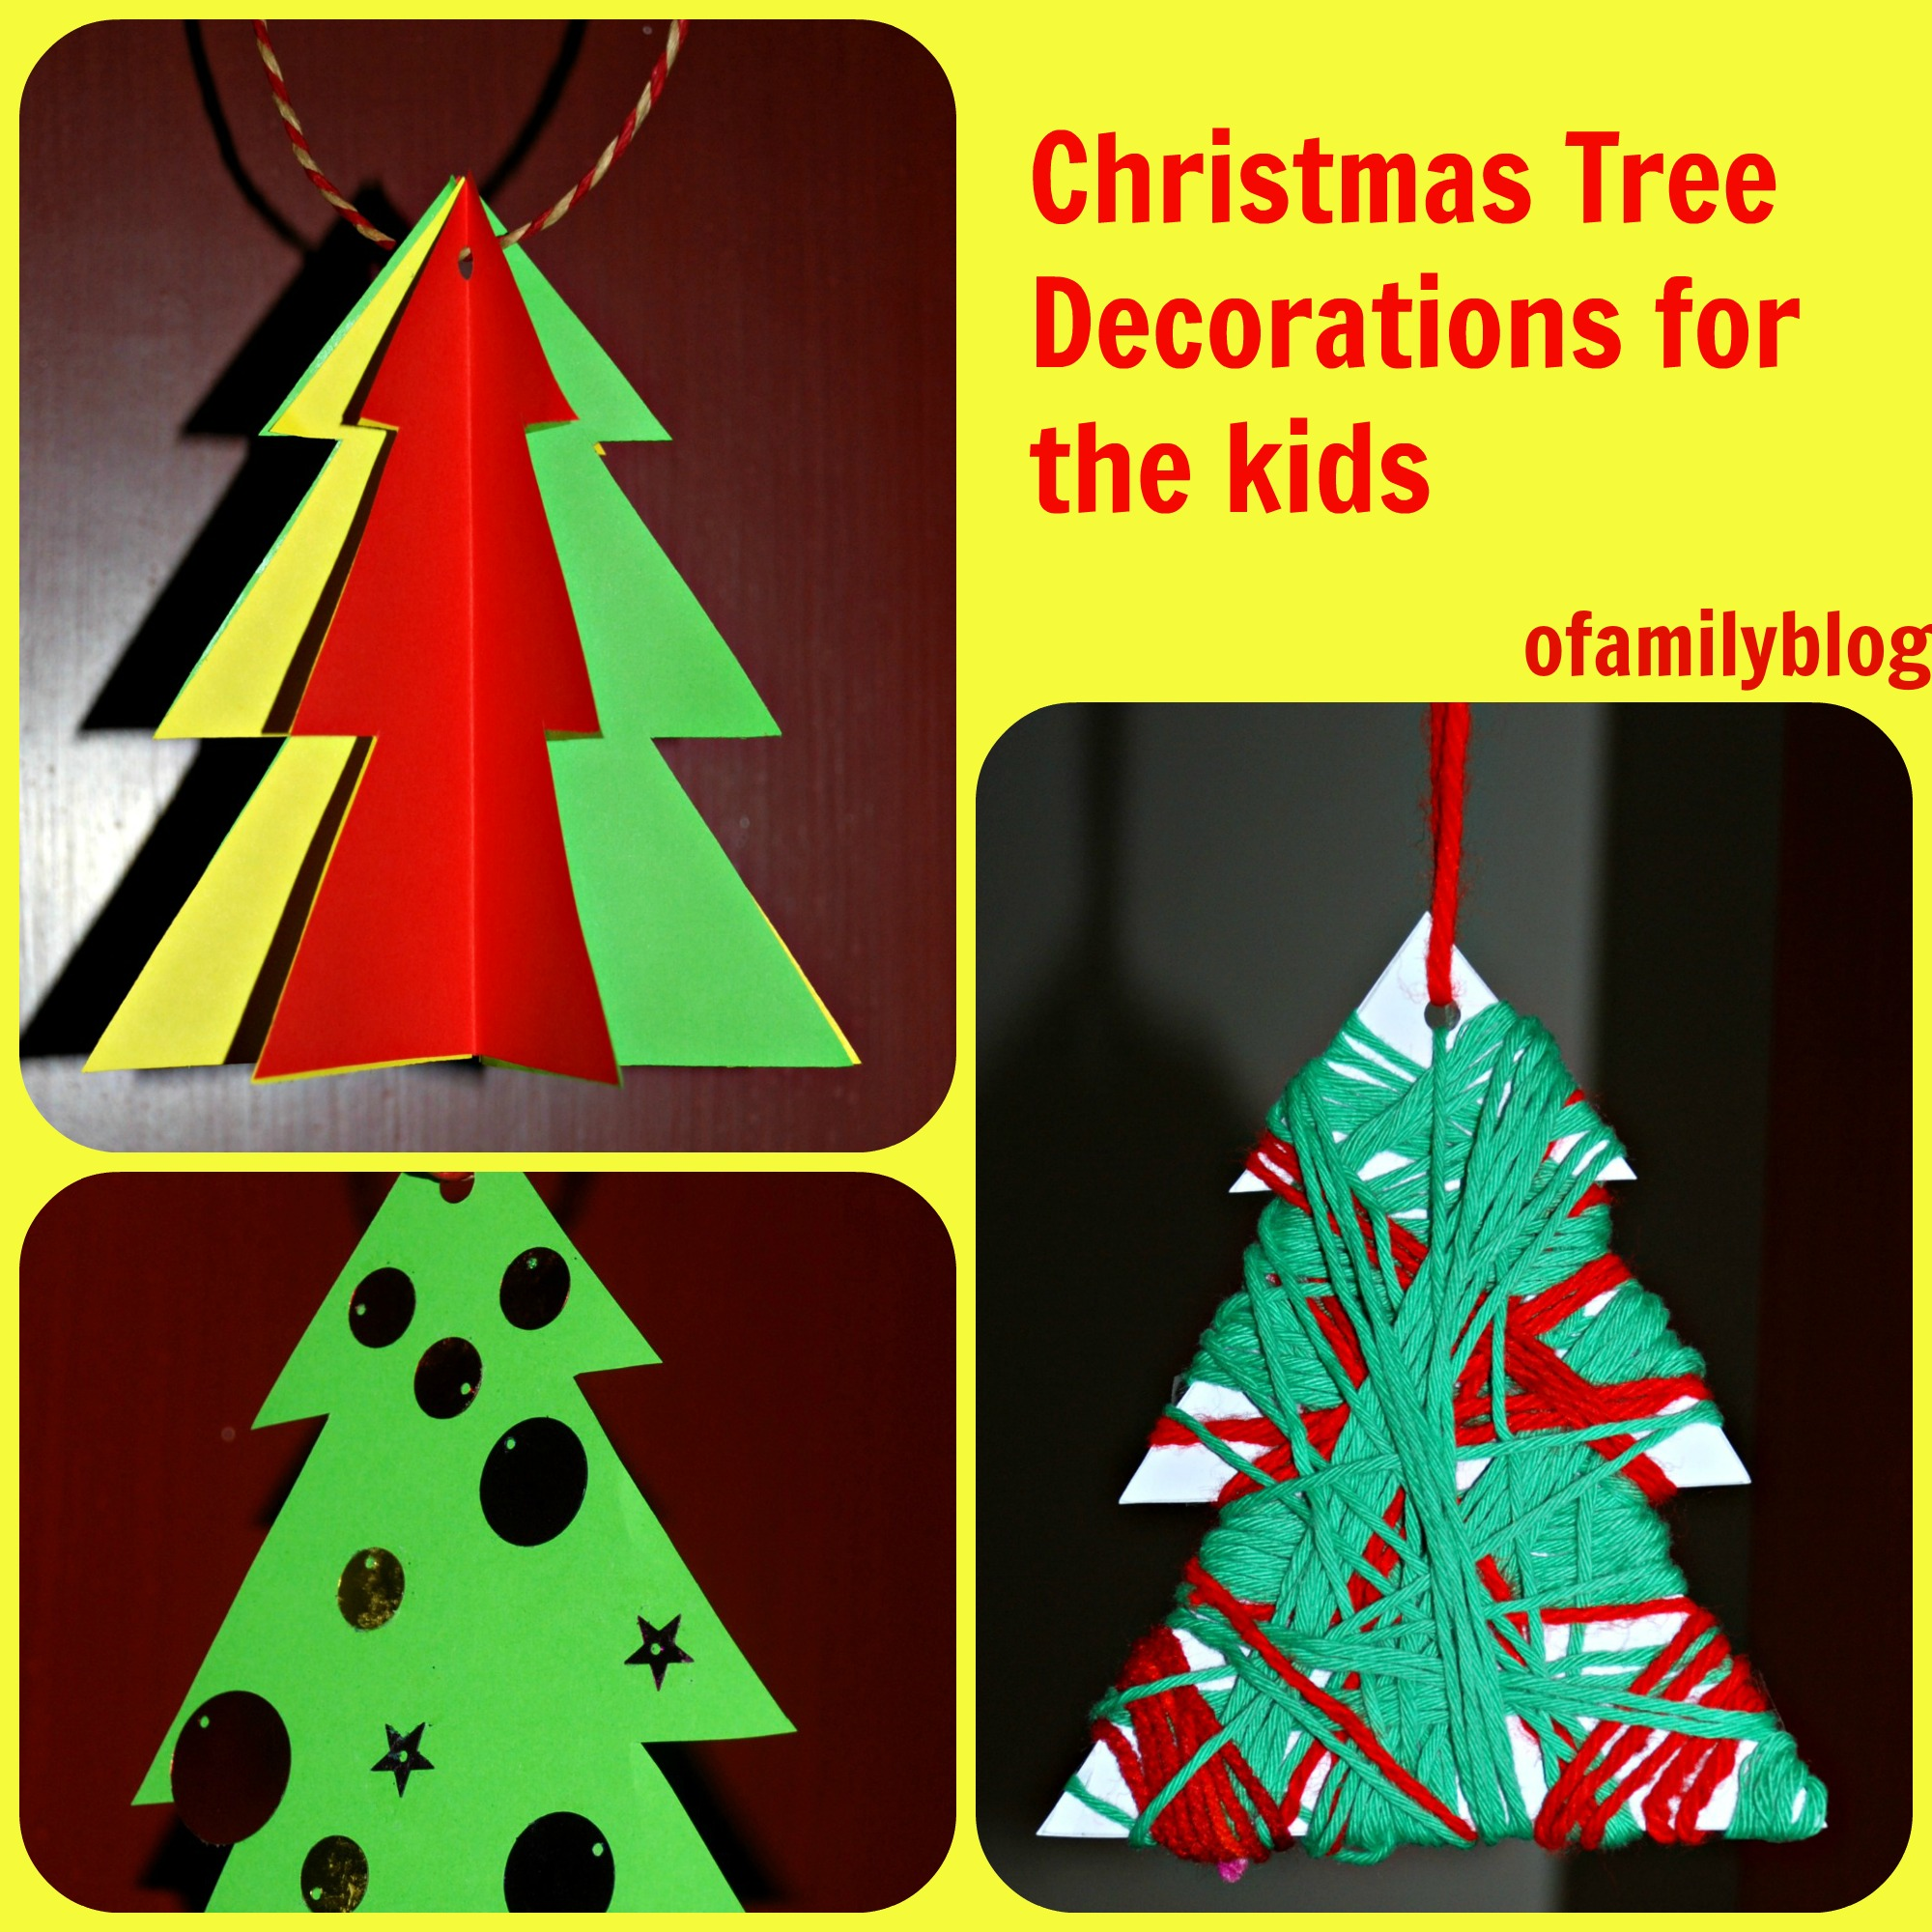 christmas tree decorations for the kids to make using an activity village template found on ofamilyblog - Christmas Tree Decorations For Kids